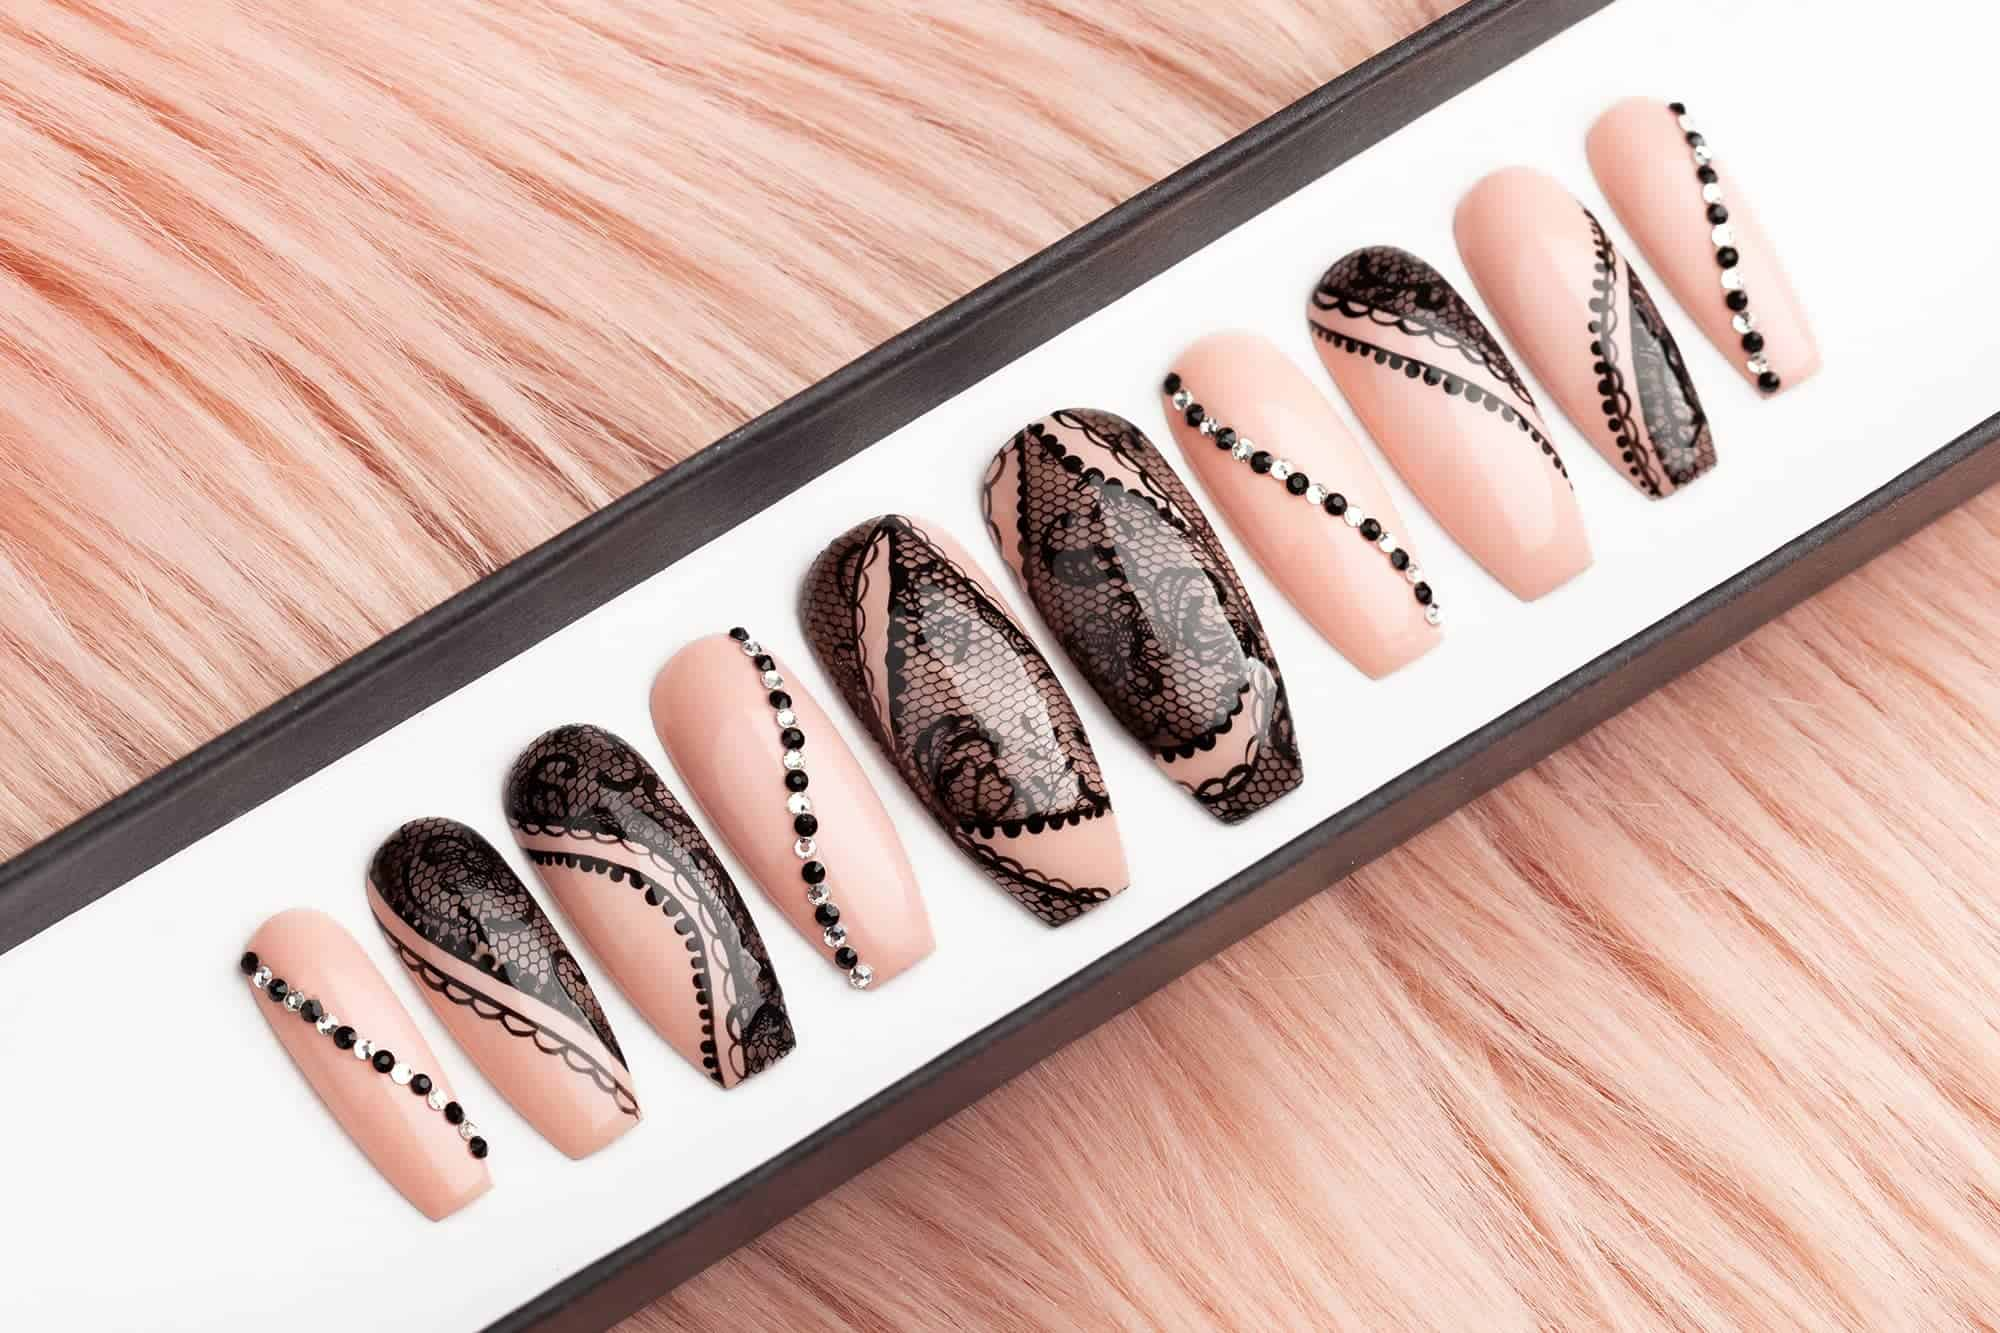 Beige Press on Nails with Black Laces and Rhinestones